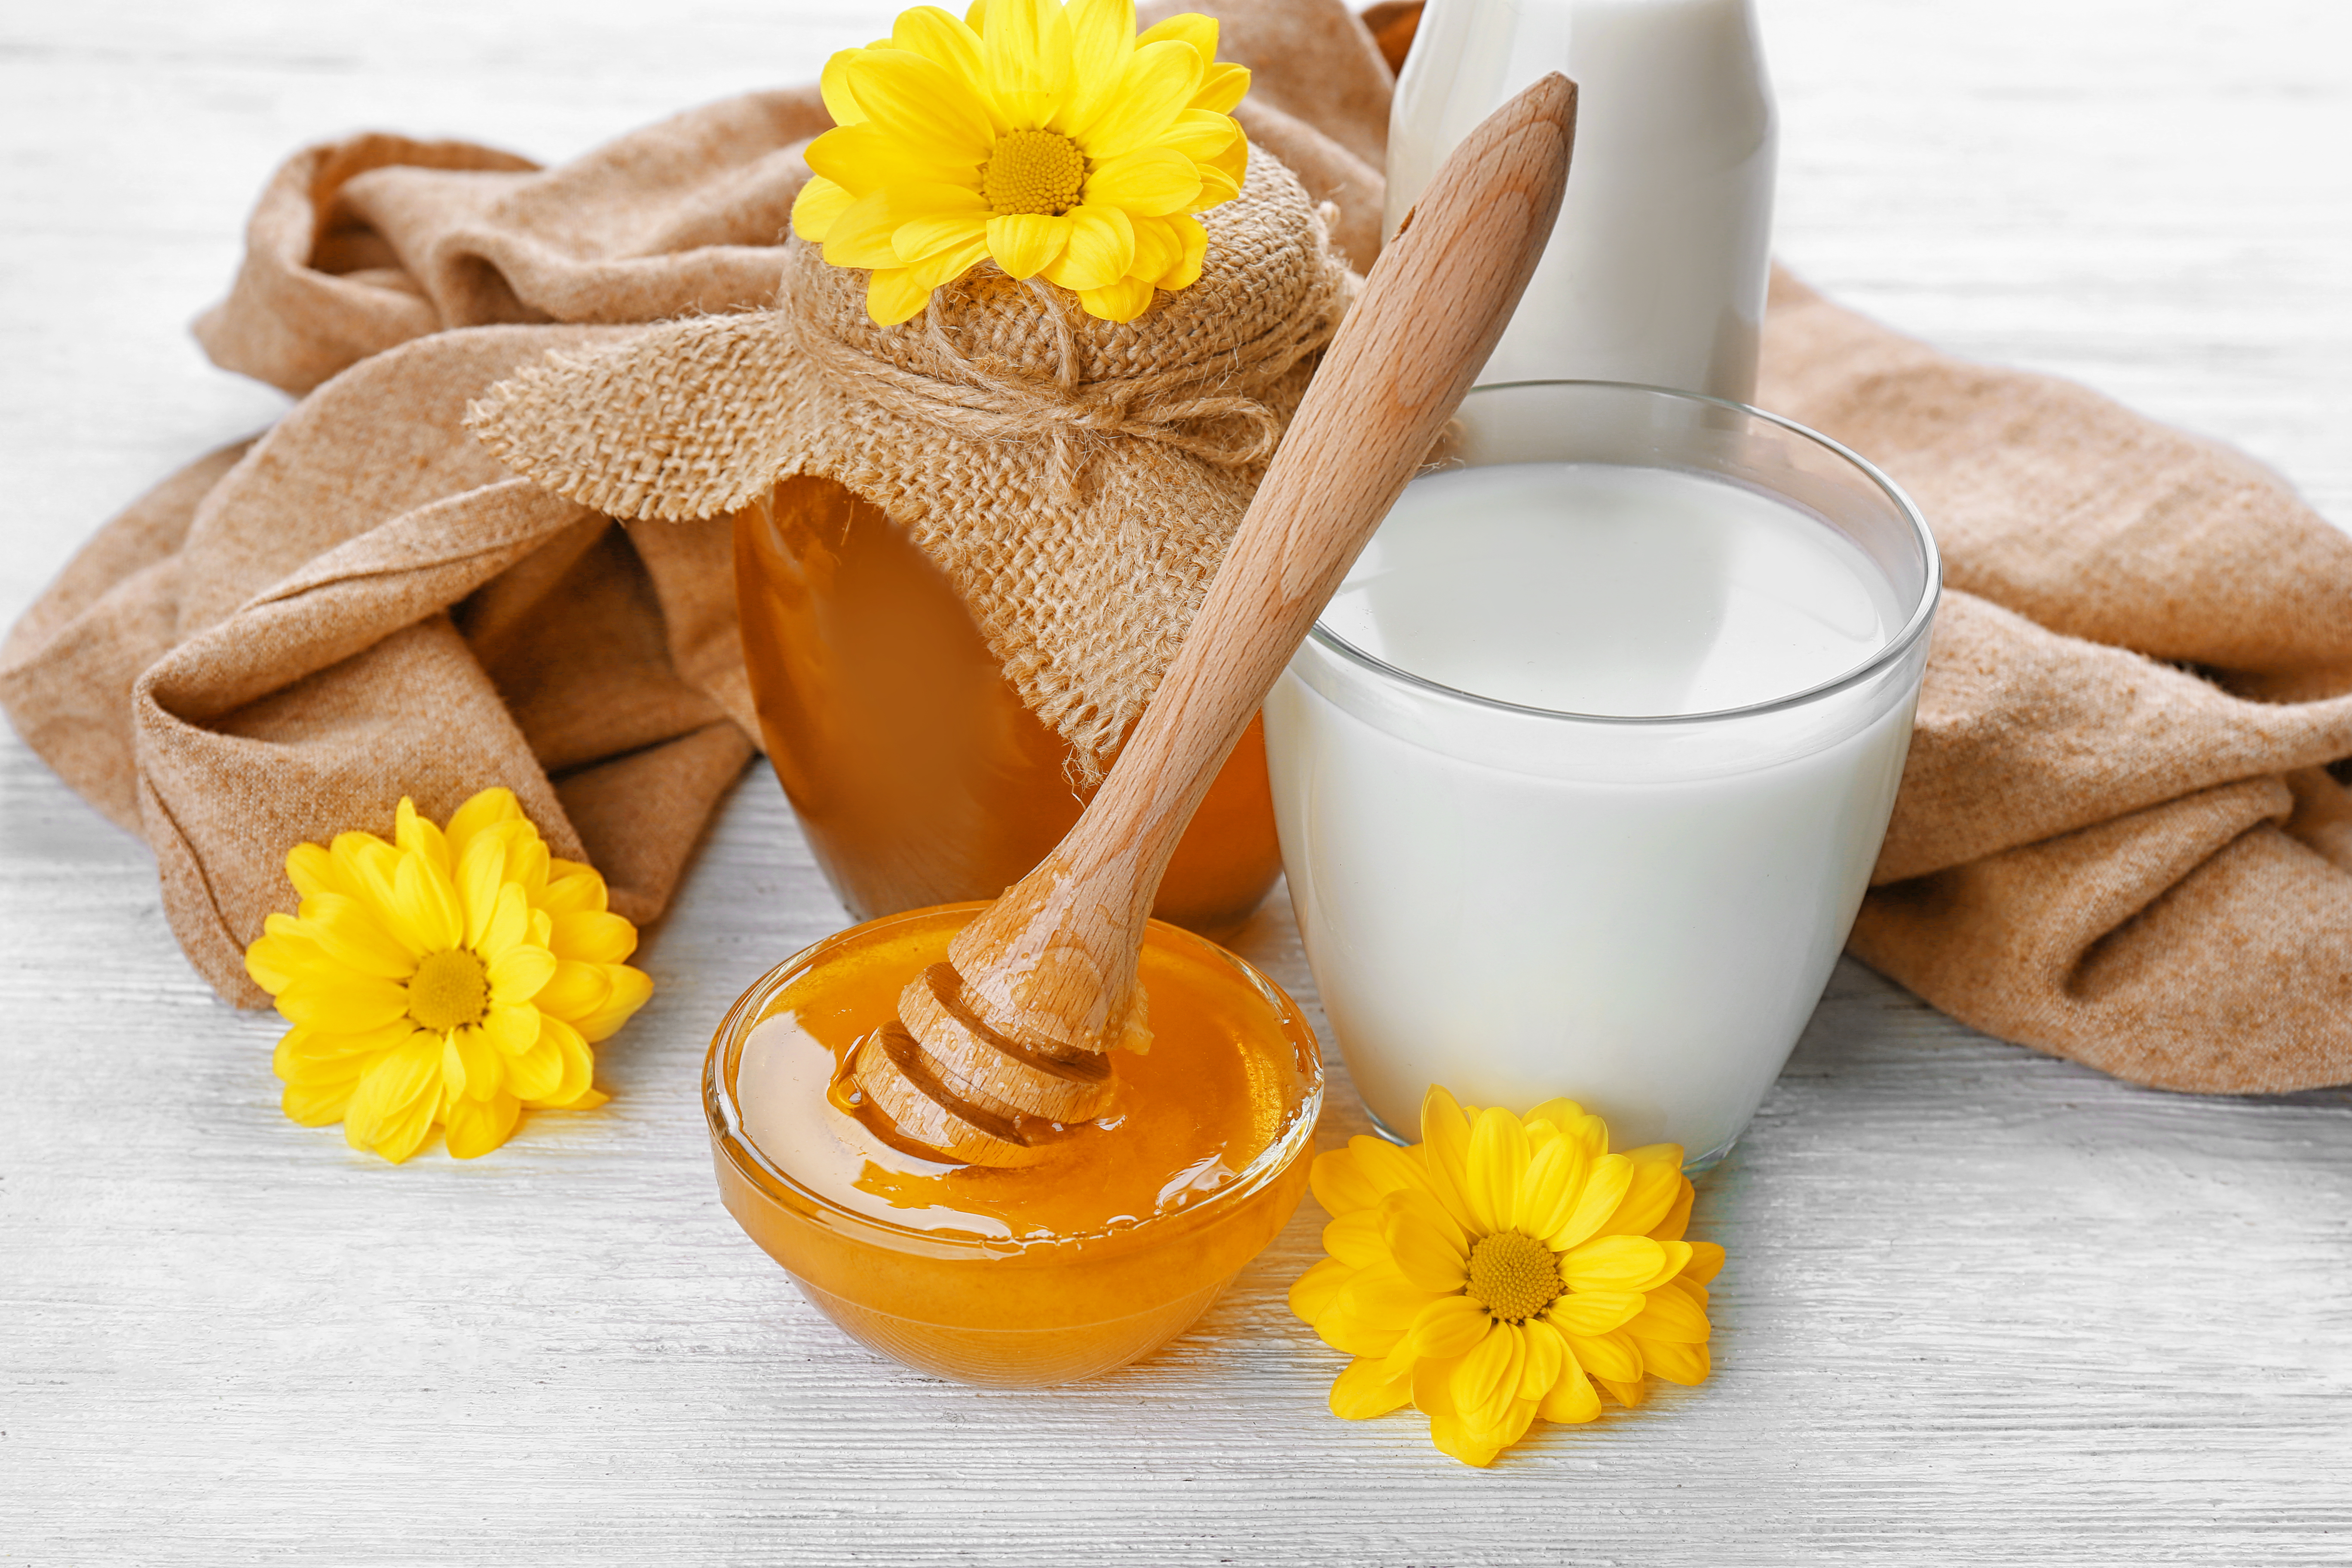 Glass of fresh milk and bowl with golden honey on white wooden table